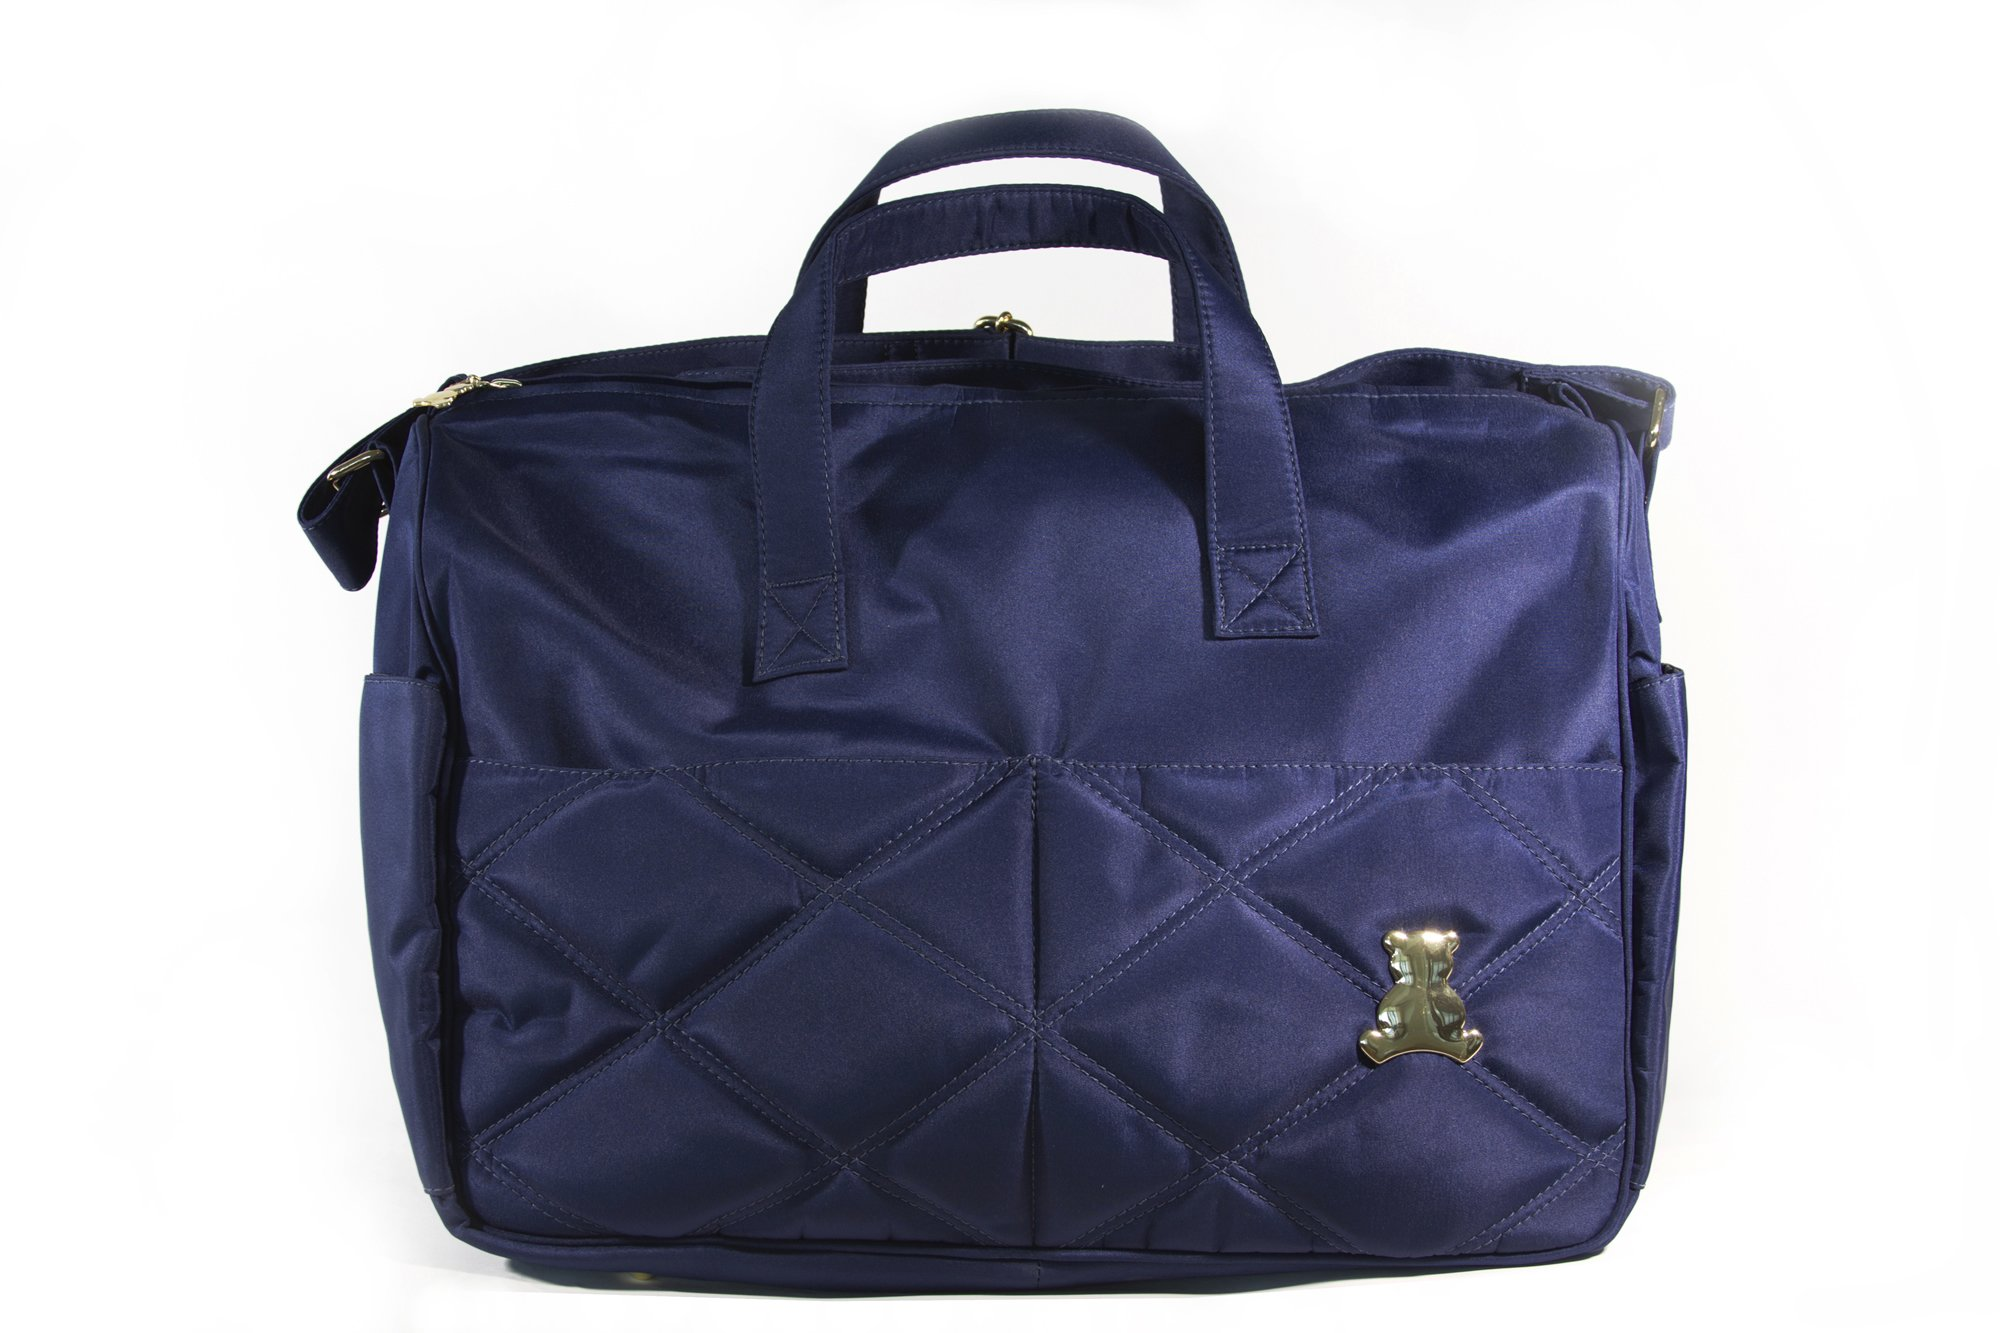 BL BABY - Elegance Collec. - MED - Crossbody Bag - Themal & Front Pockets - Blue - 9x19x17''